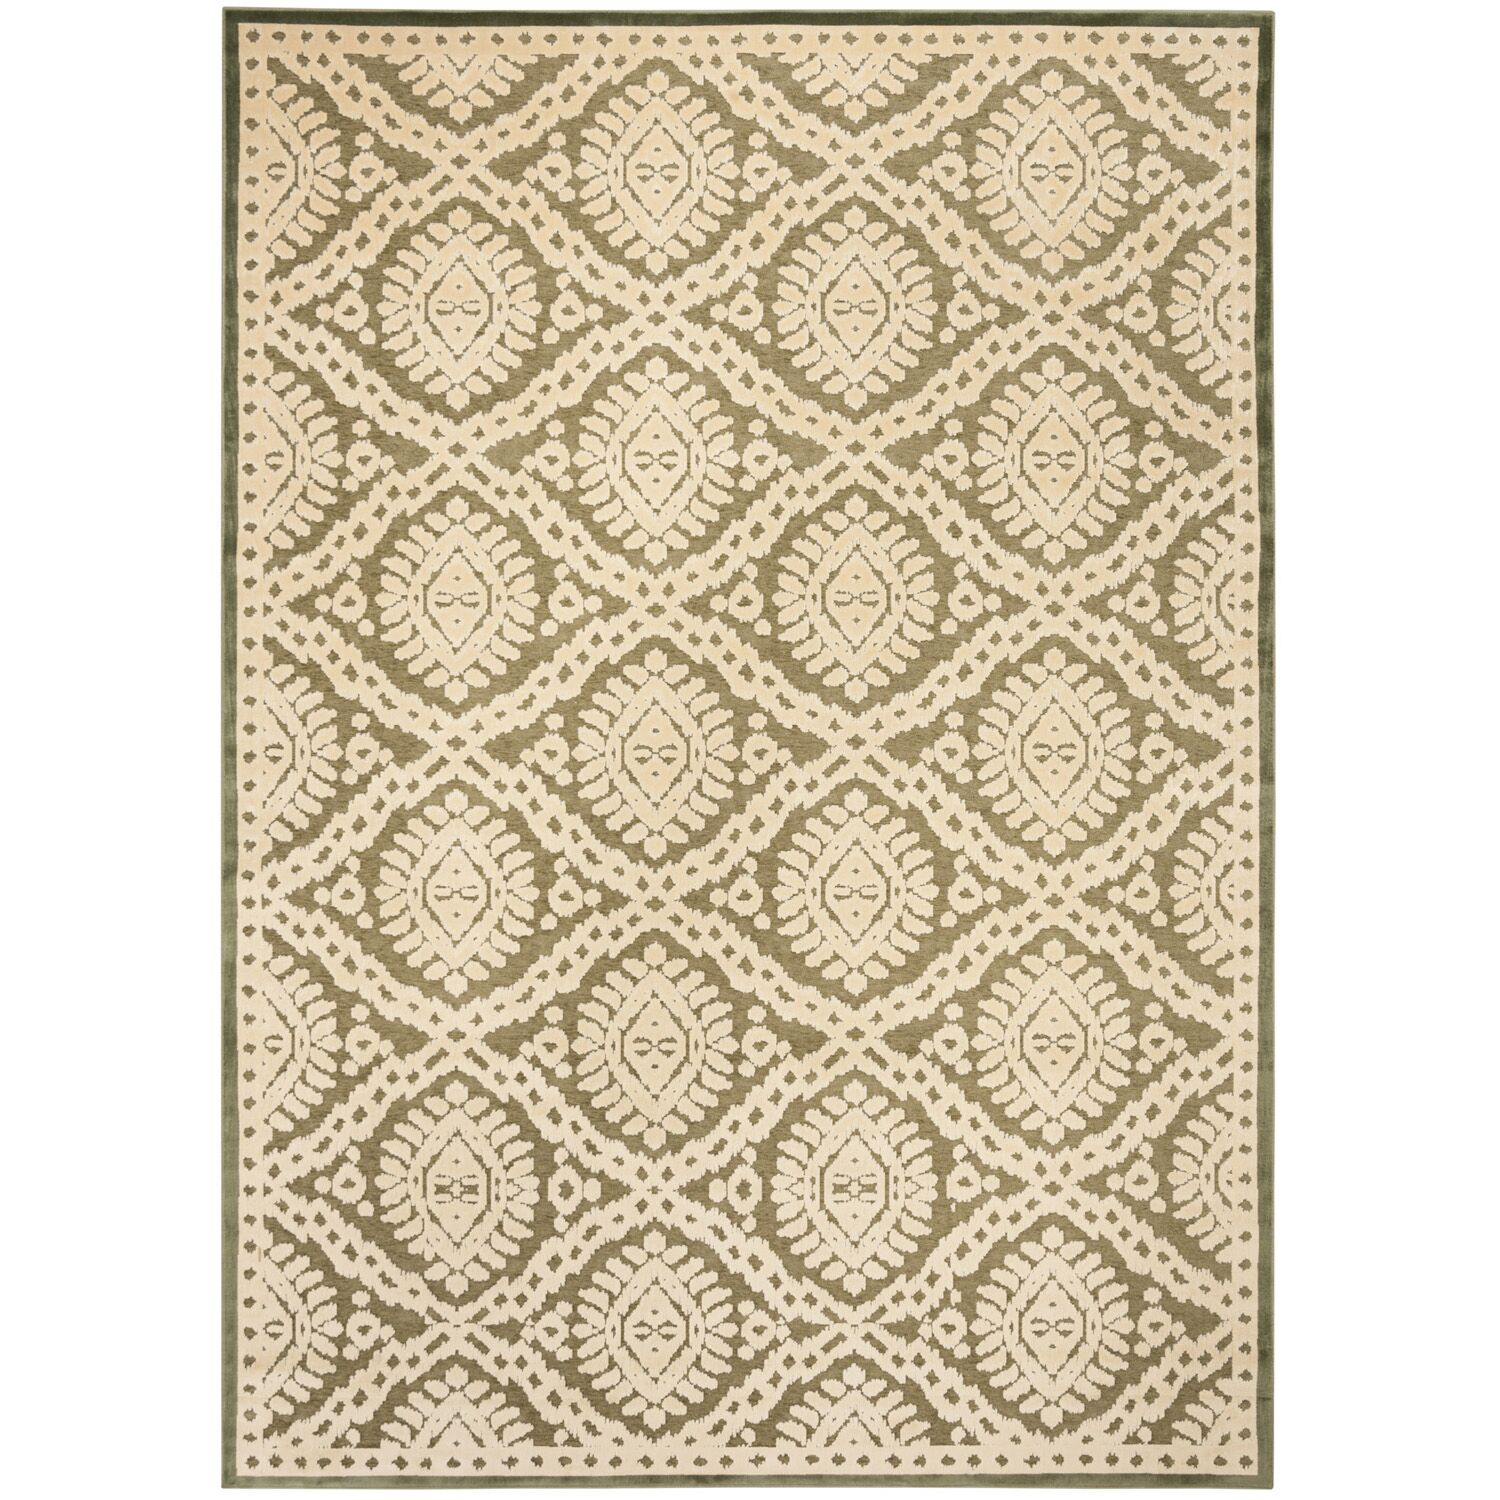 Hand-Loomed Dill Area Rug Rug Size: Rectangle 8' x 11'2